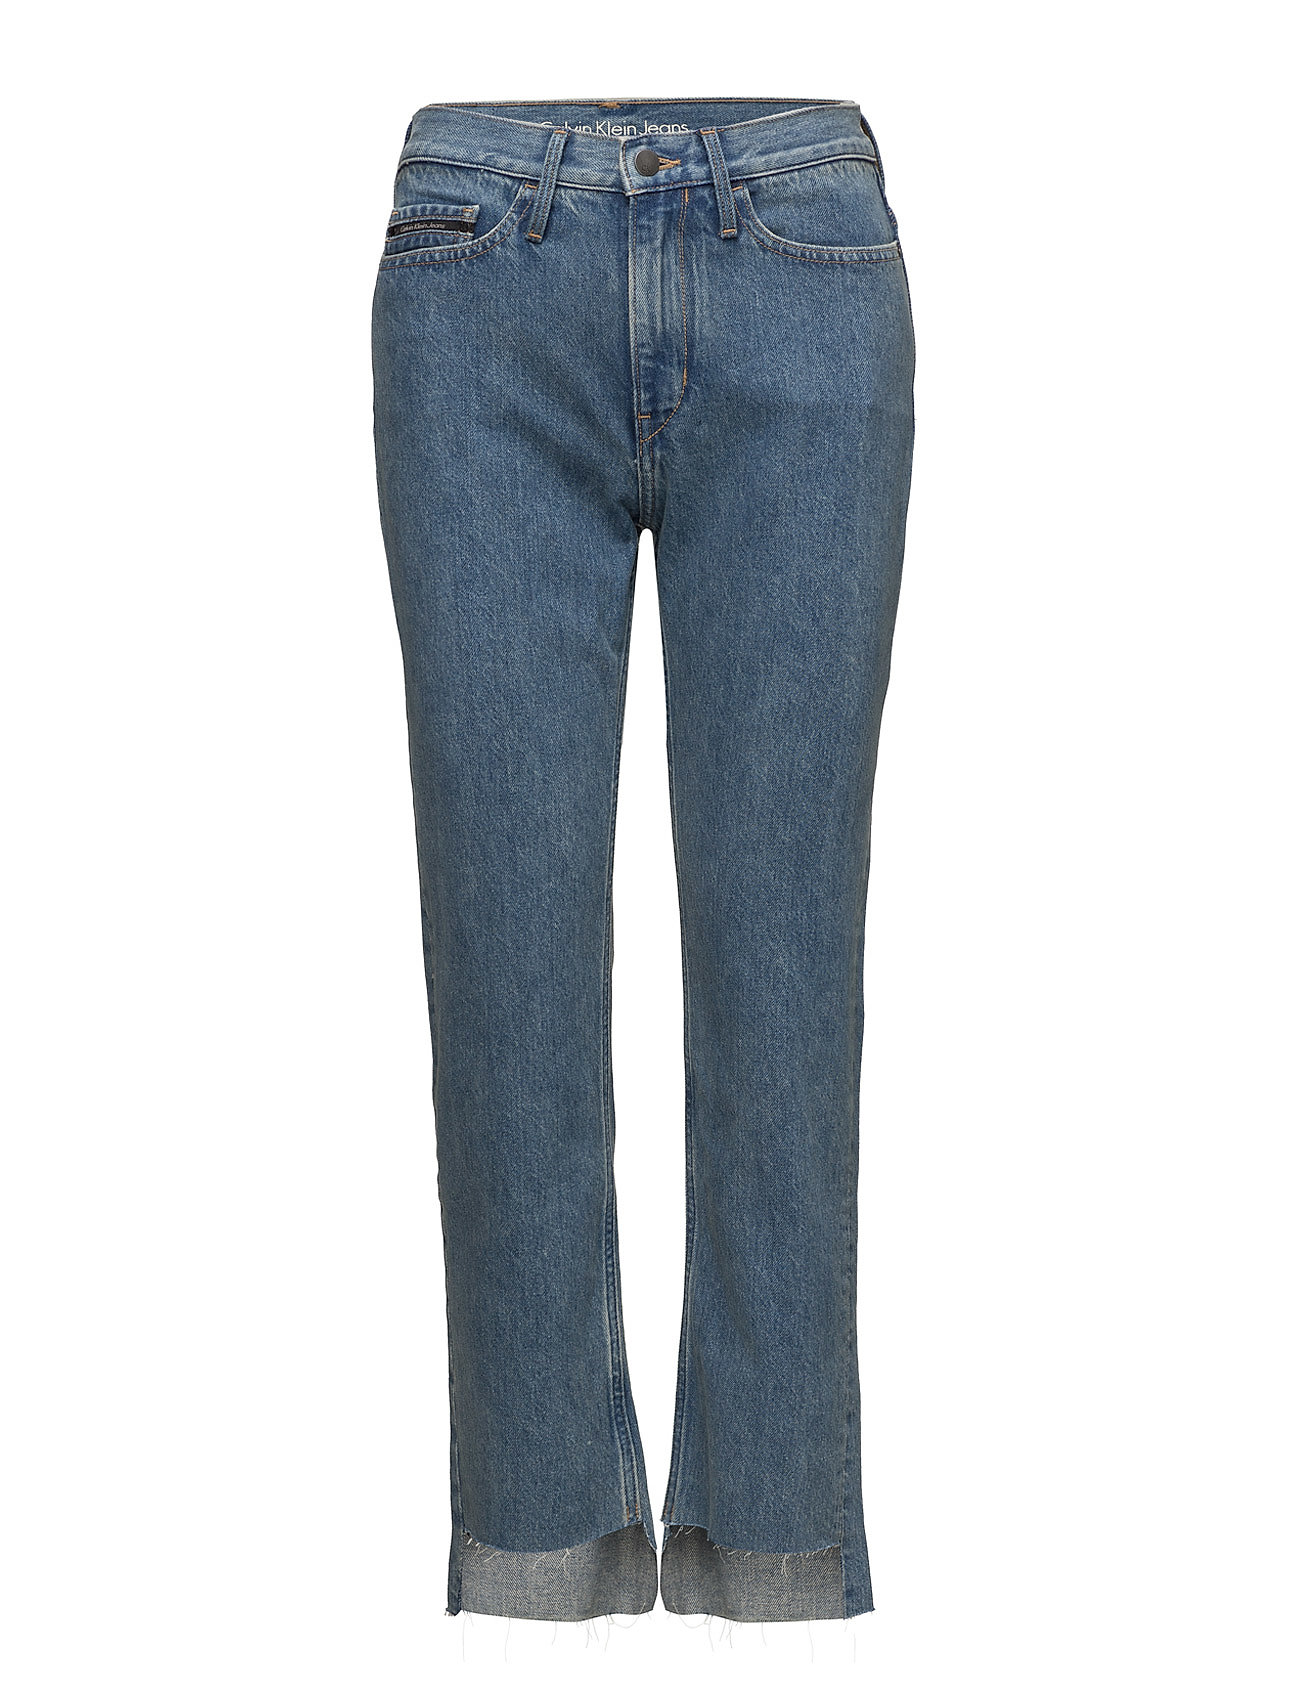 Jeans im Sale - Hr Straight Ankle St